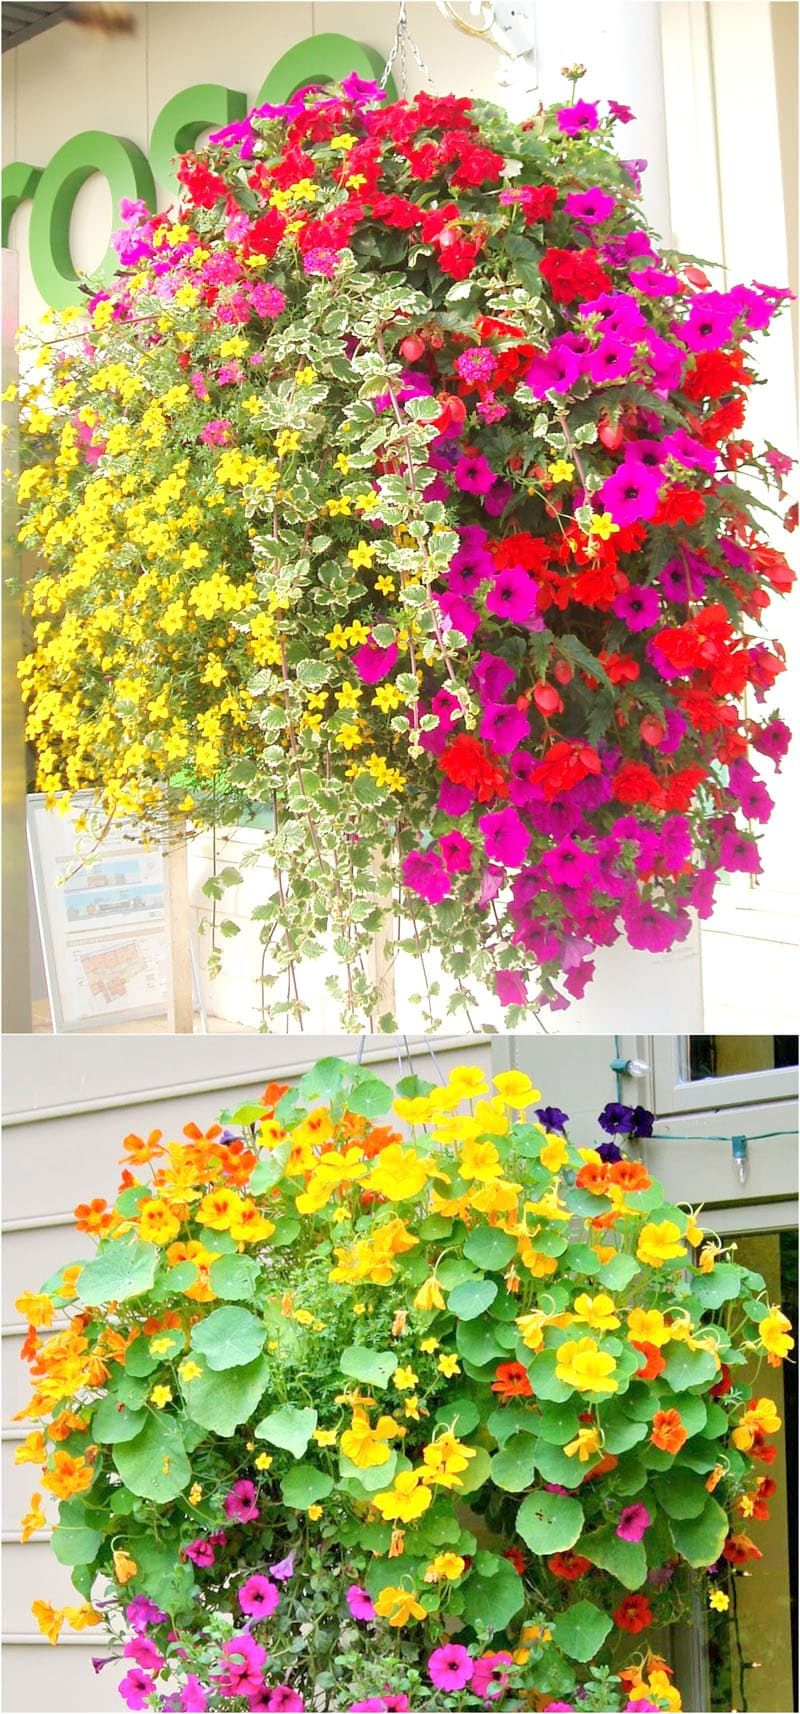 How to plant beautiful flower hanging baskets 20 best hanging how to plant beautiful hanging baskets that last for months choose the best plants from izmirmasajfo